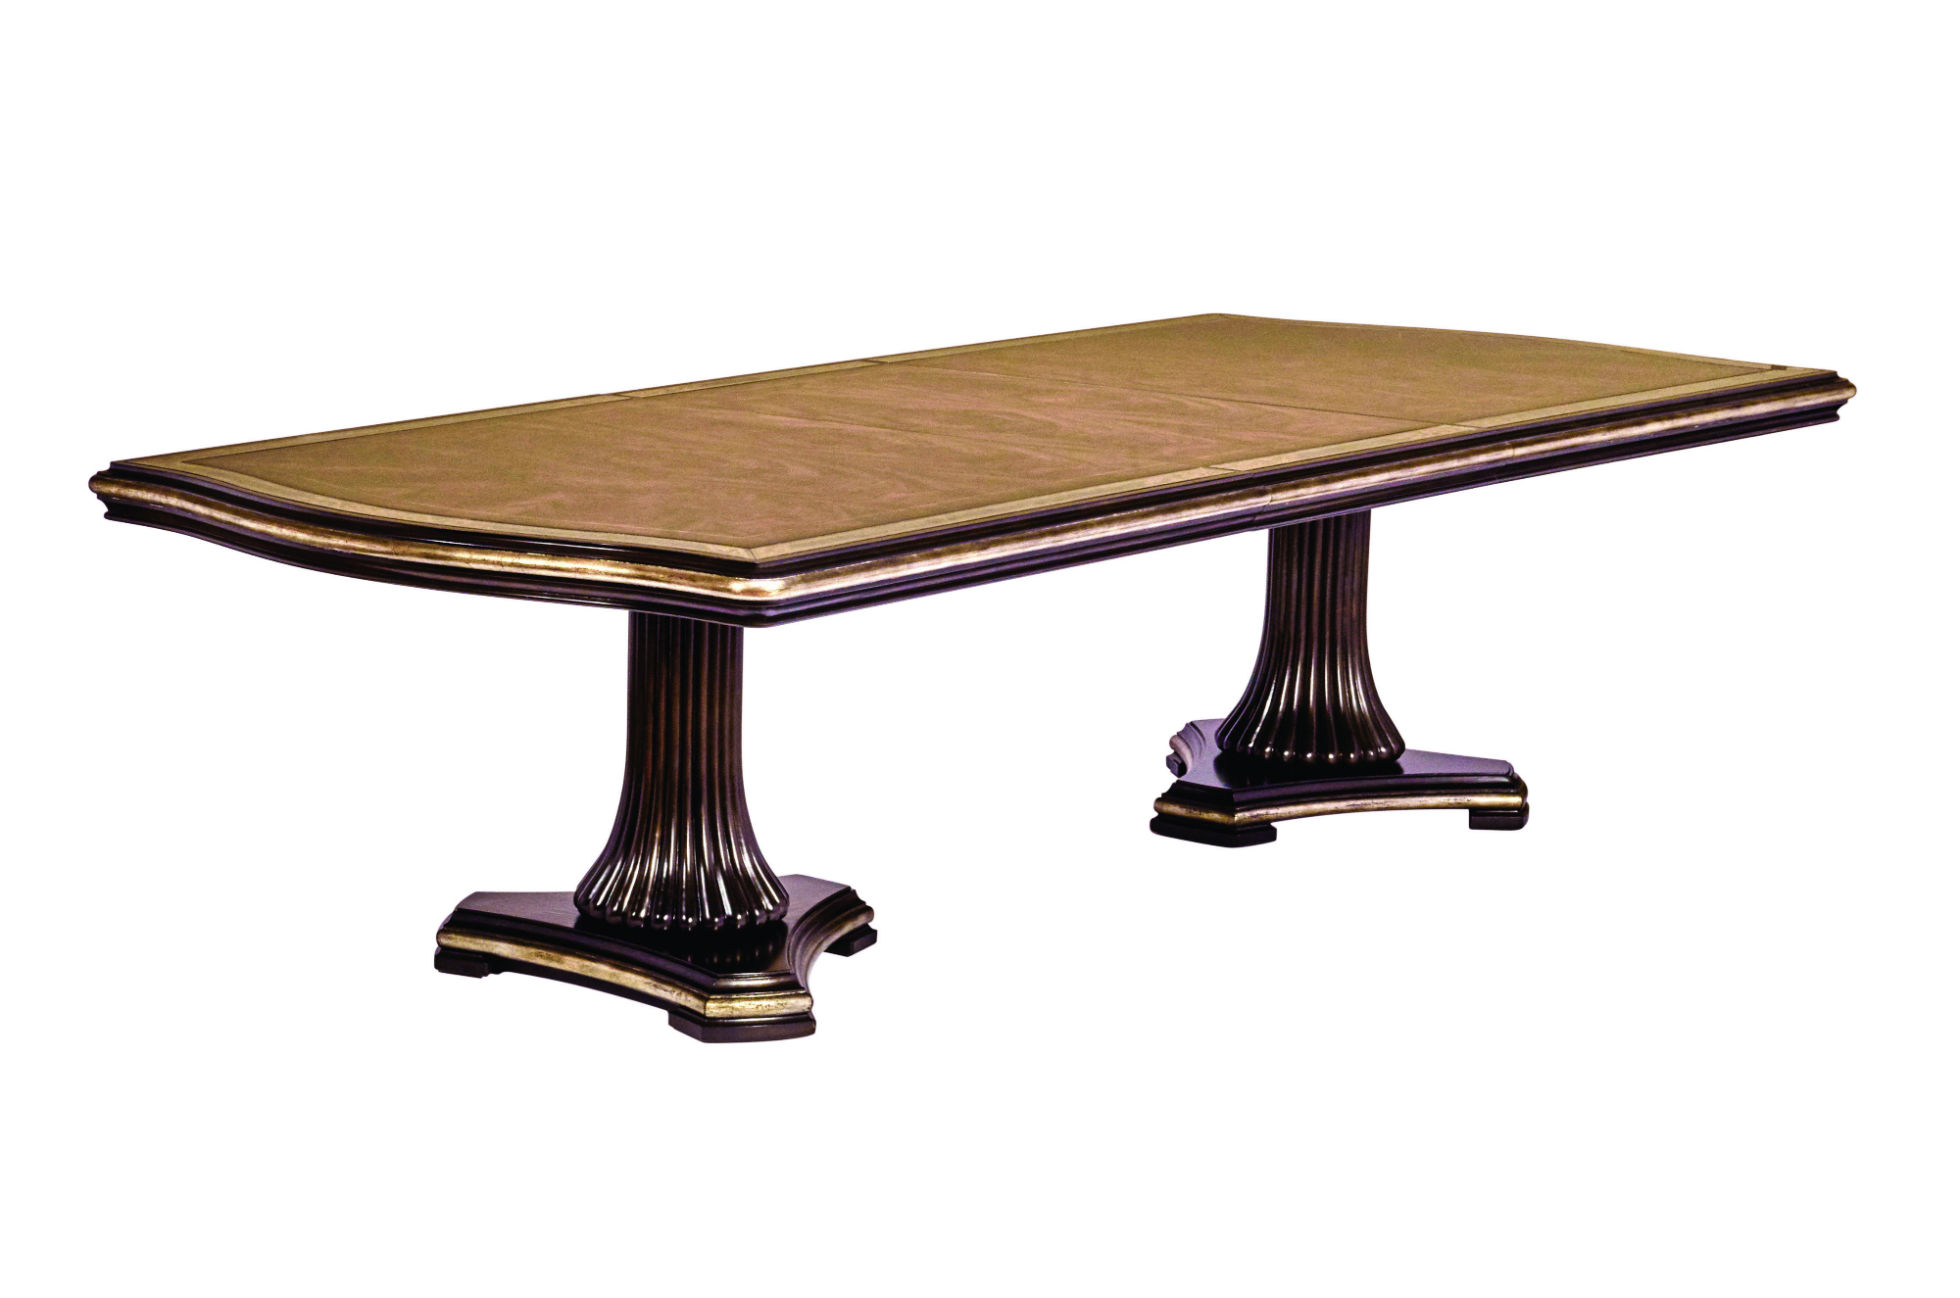 Marge Carson Dining Tables April Market Introductions 2017 Marge Carson